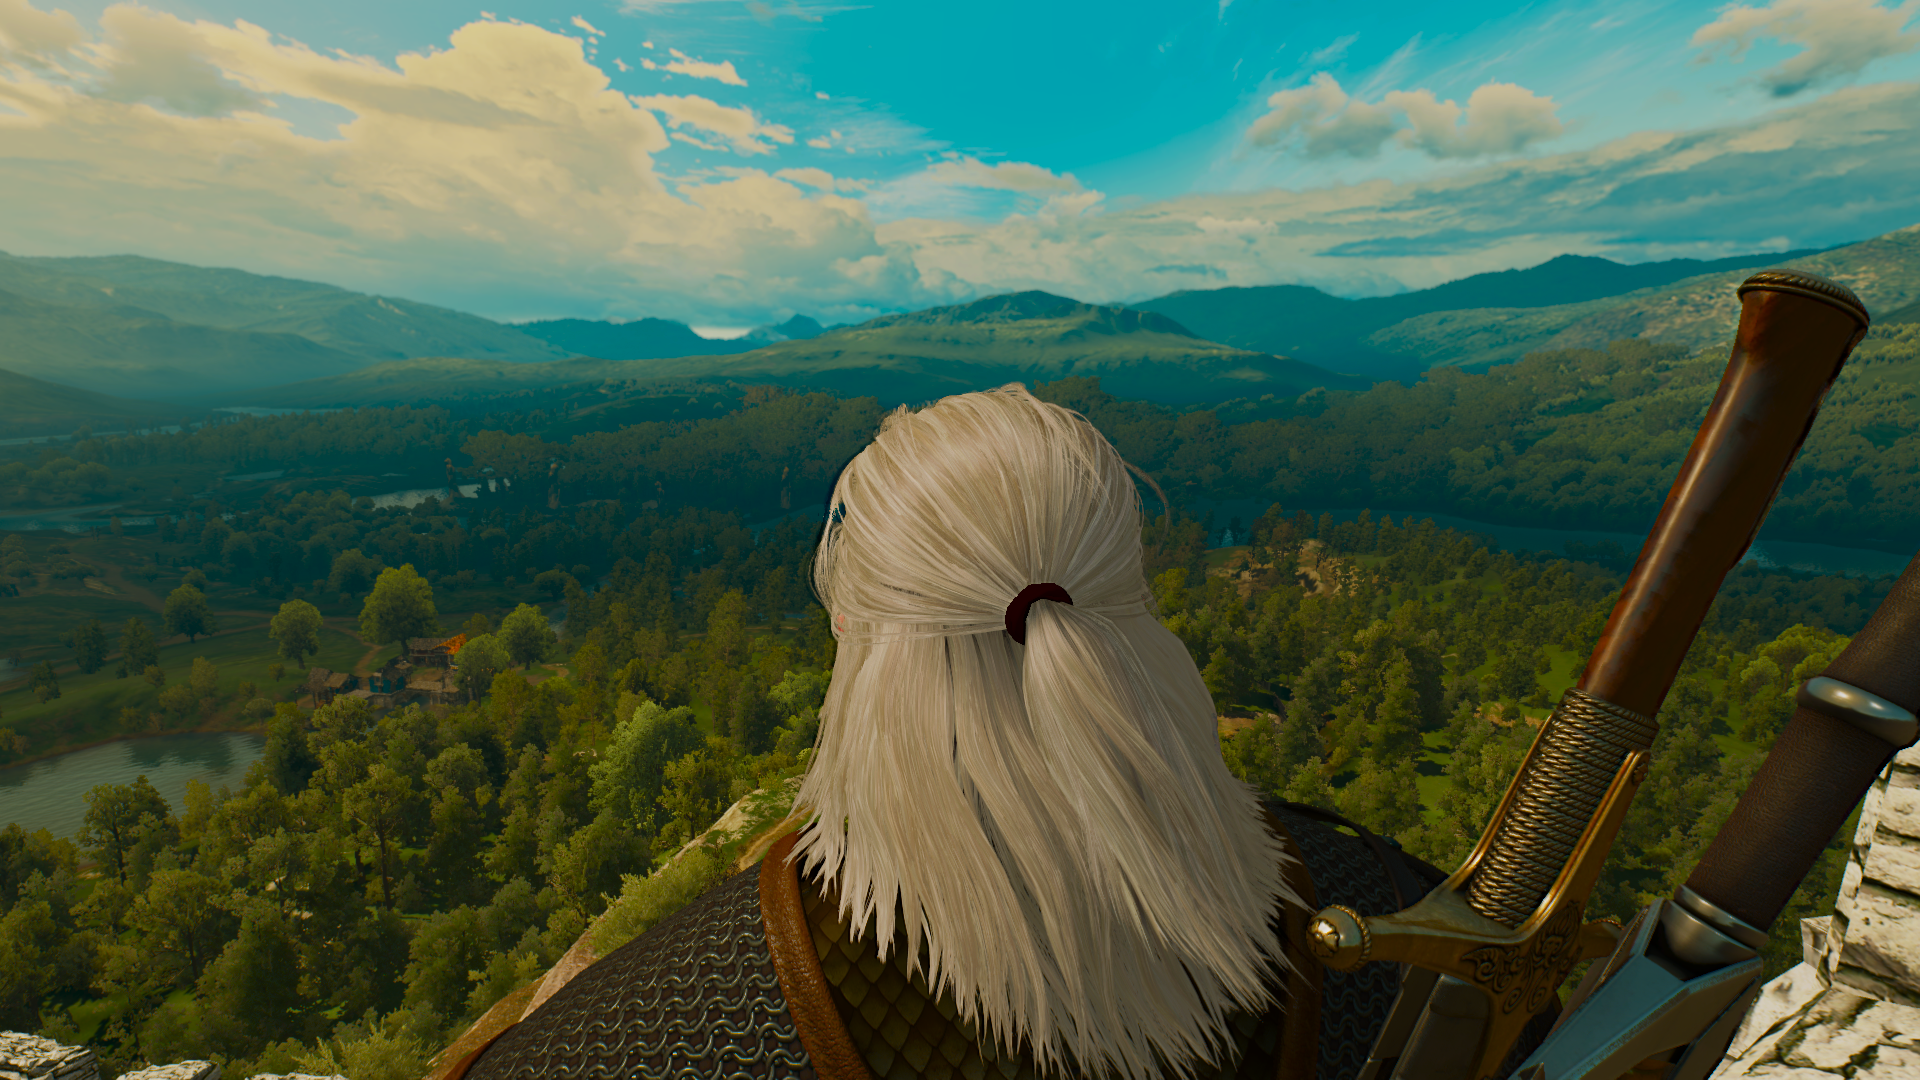 The Witcher 3 05.01.2019 20_03_00.png - Witcher 3: Wild Hunt, the